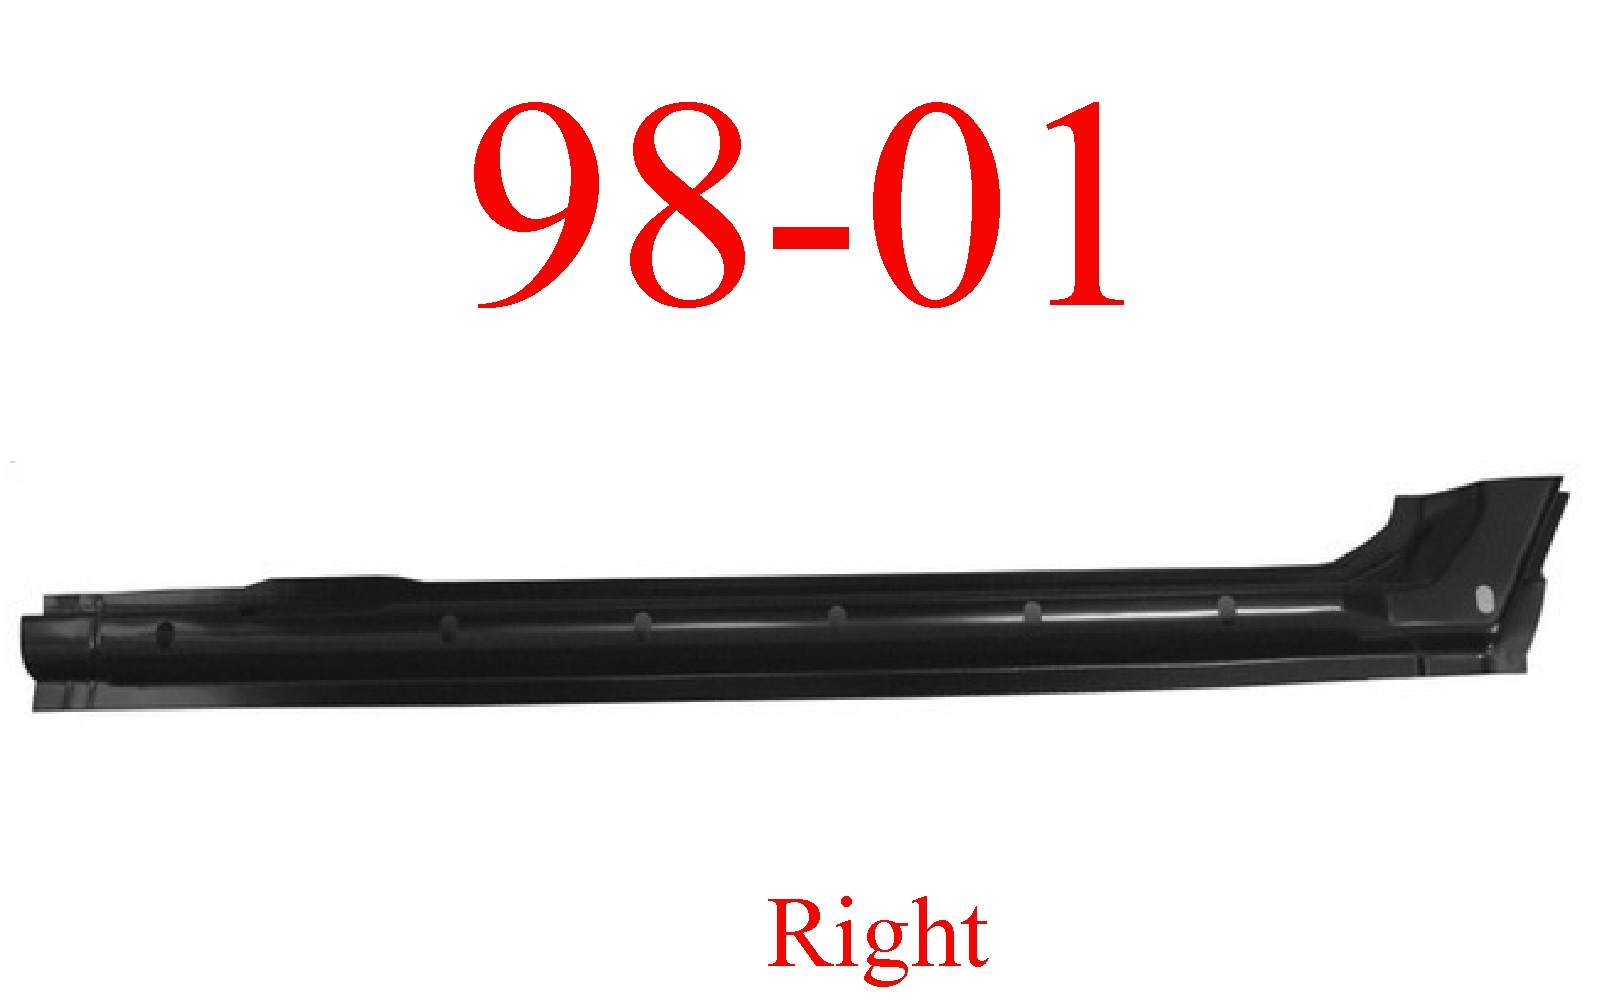 98-01 Dodge Right Quad Cab Extended Rocker Panel